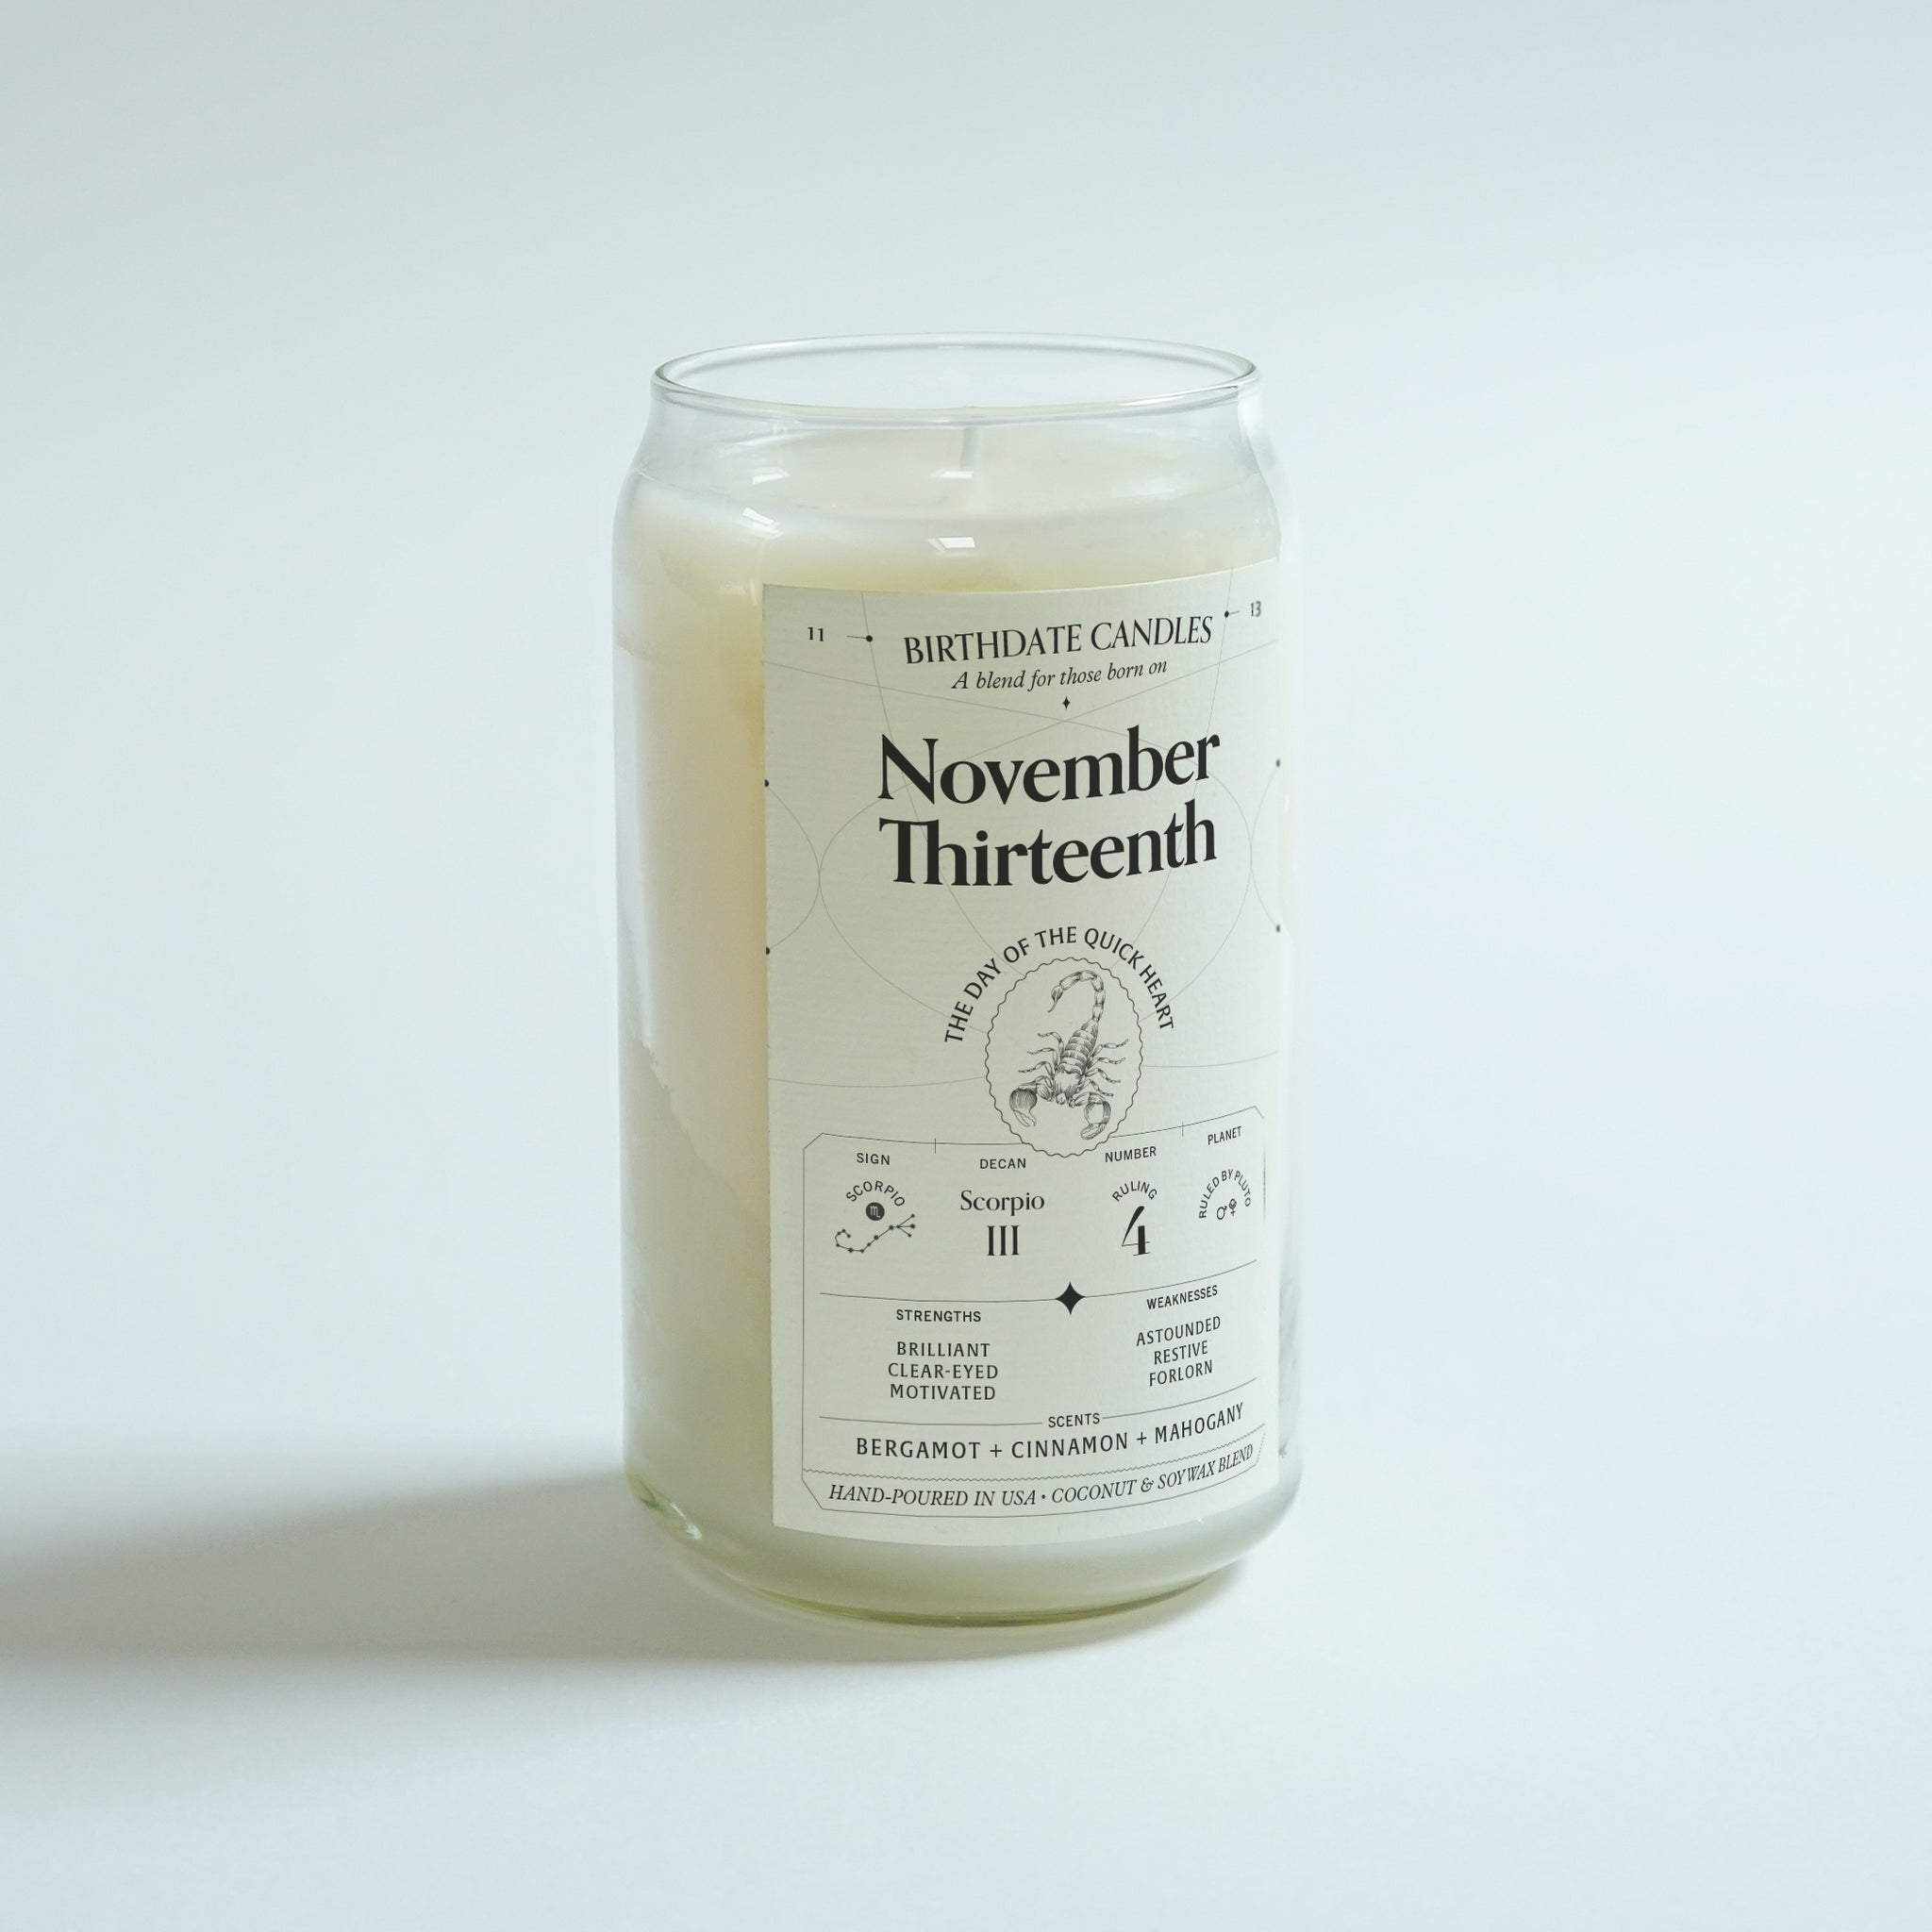 The November Thirteenth Candle